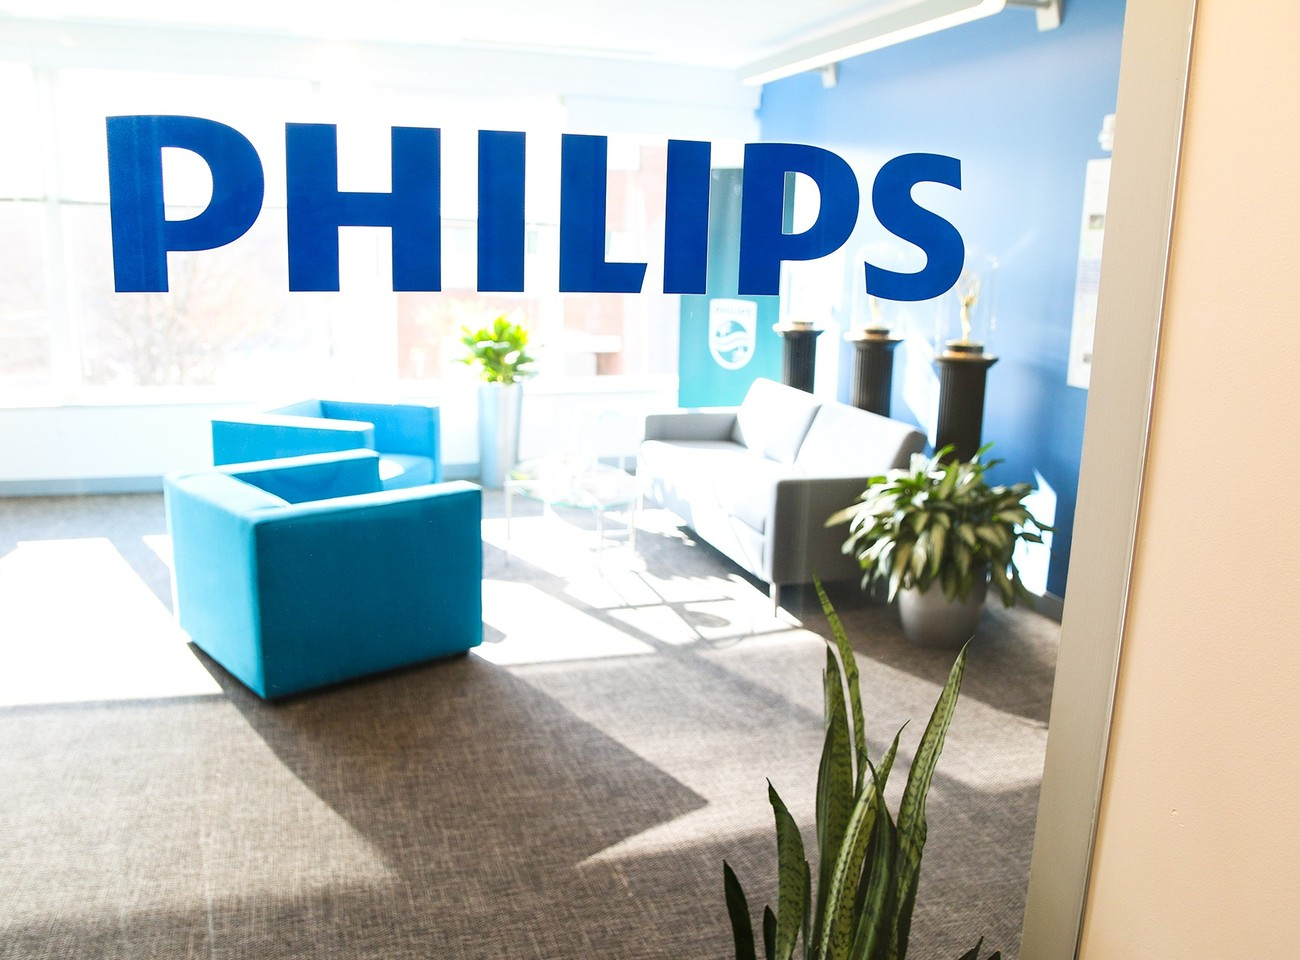 Philips Careers